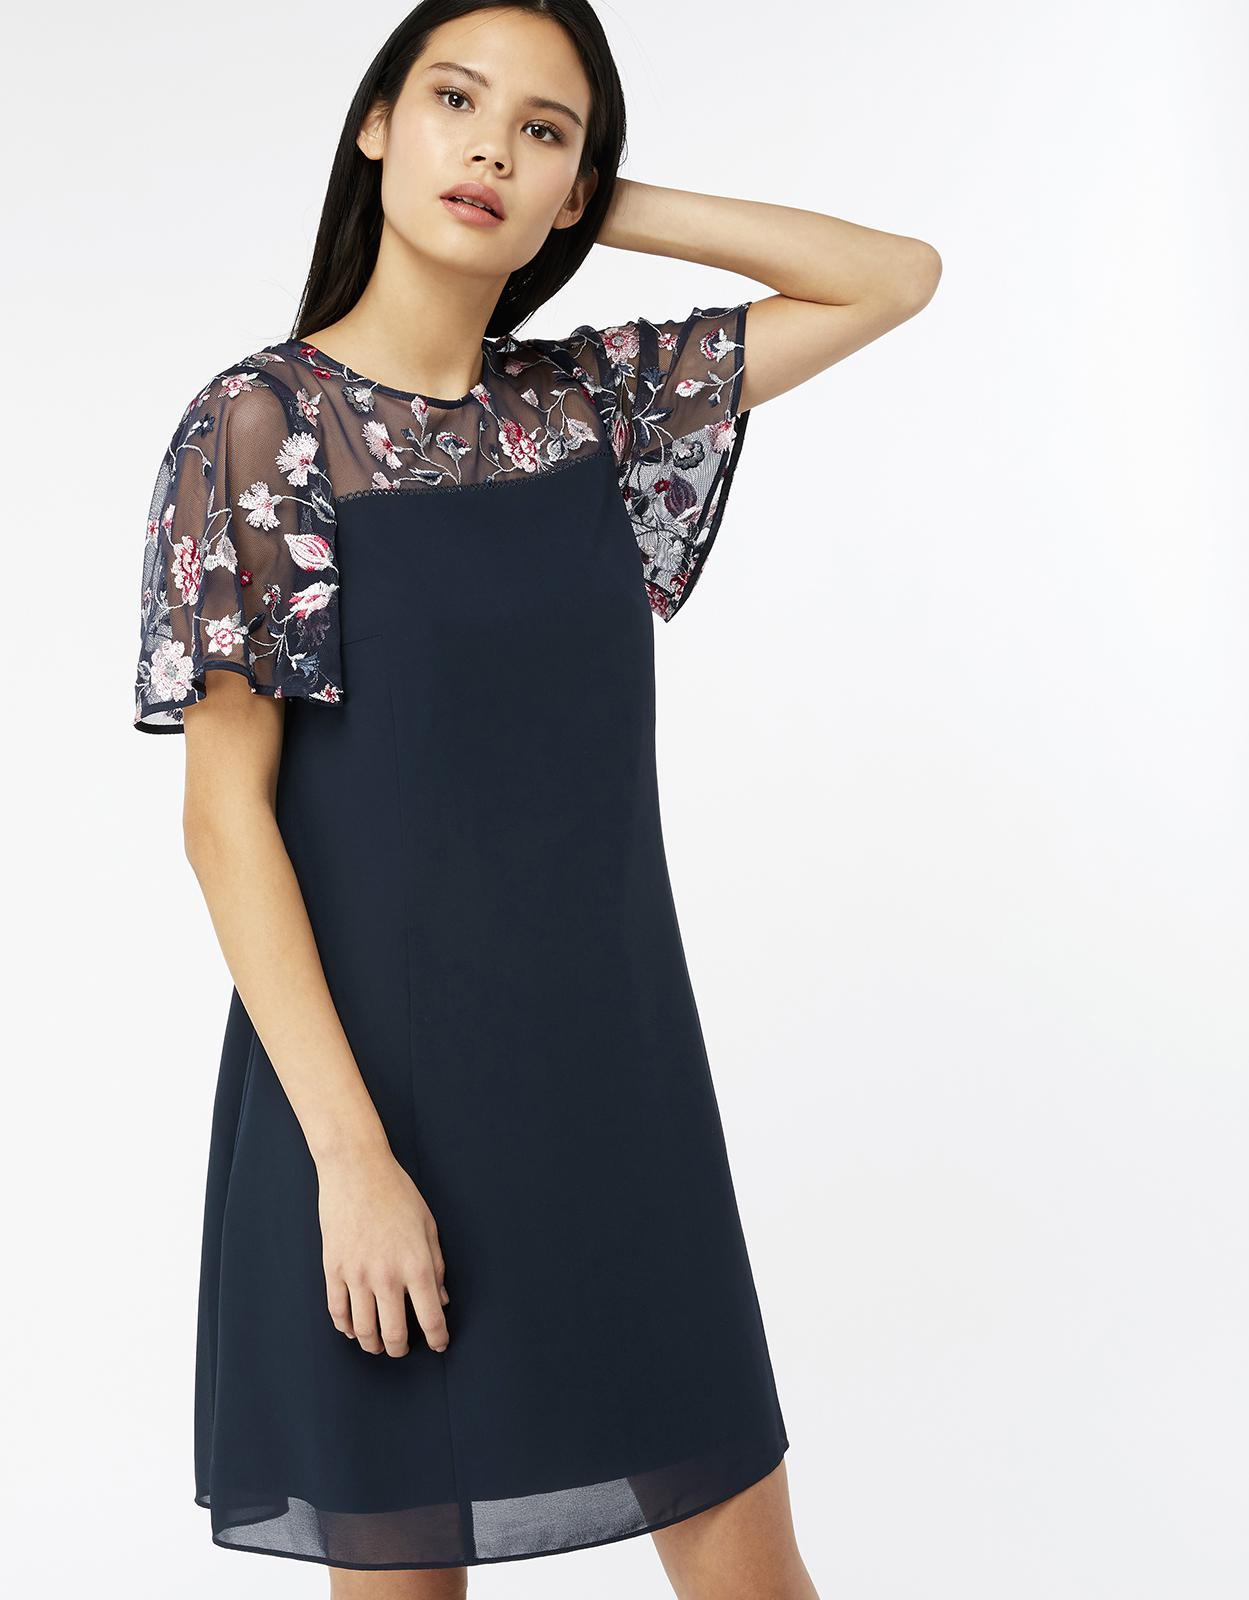 lyst - monsoon cara embroidered dress in blue - save 23%